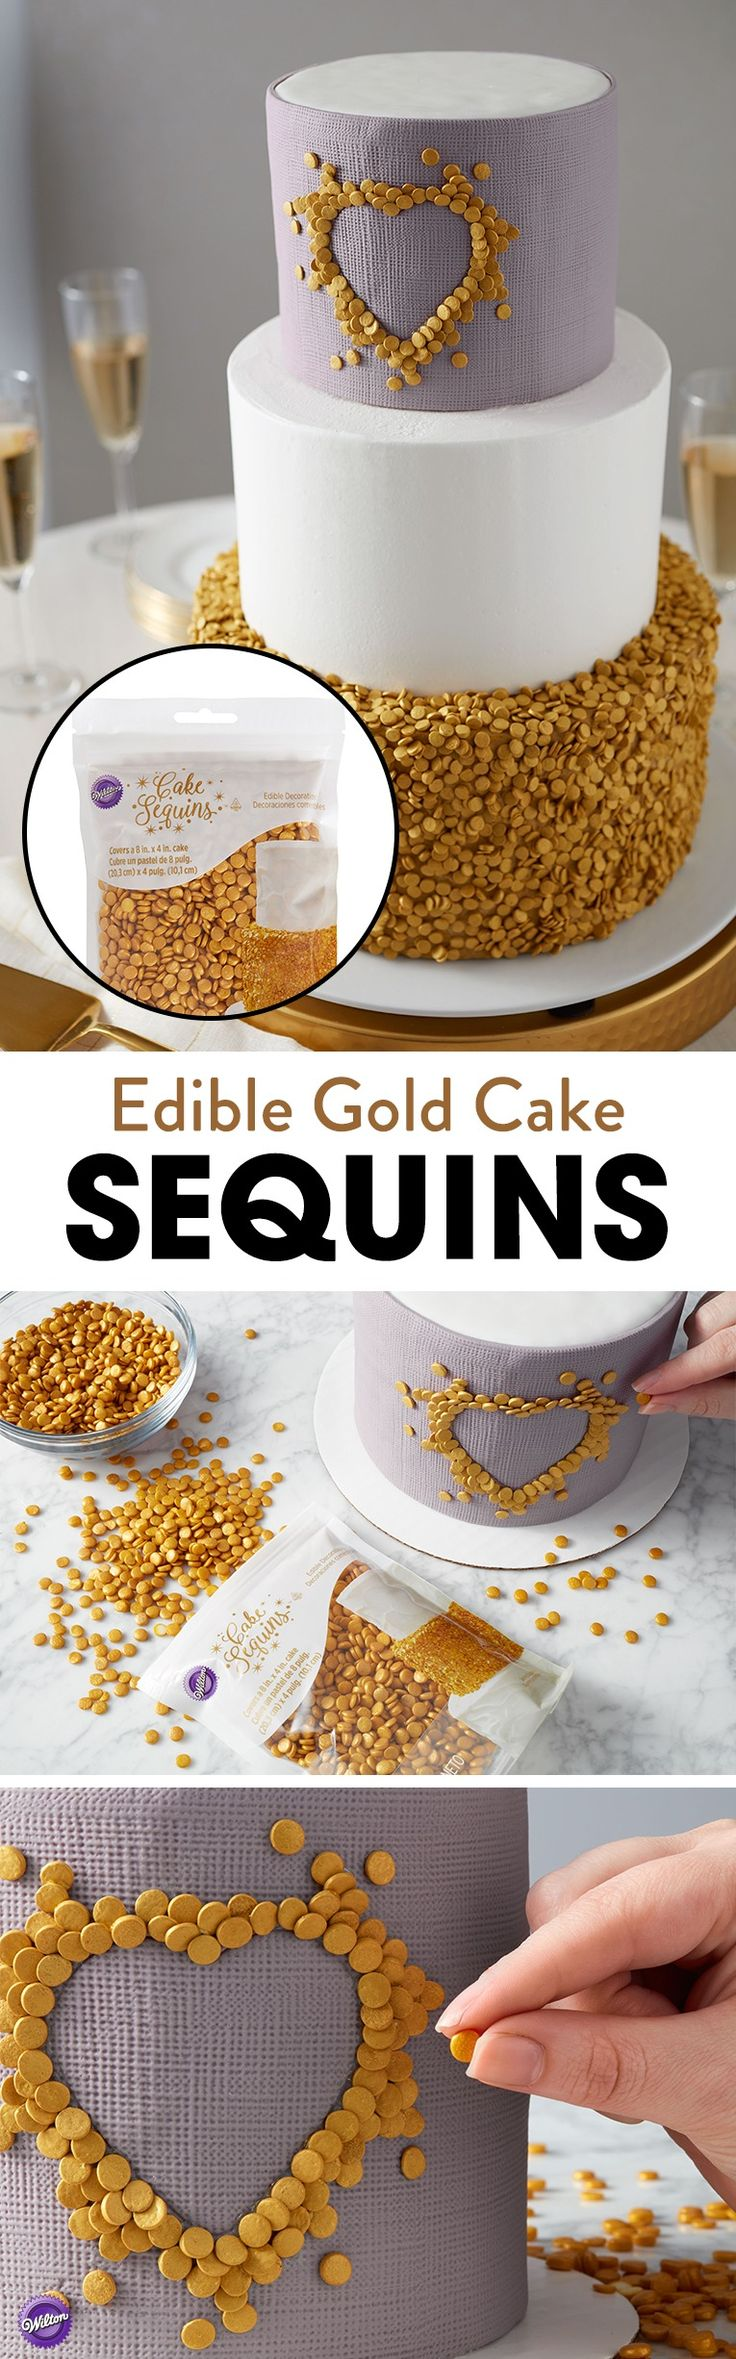 Your cake will be all that glitters with these edible gold cake sequins from Wilton. They provide a quick and easy way to add a bit of glam to cakes, cookies and cupcakes for weddings, showers, graduations or even New Year's Eve.